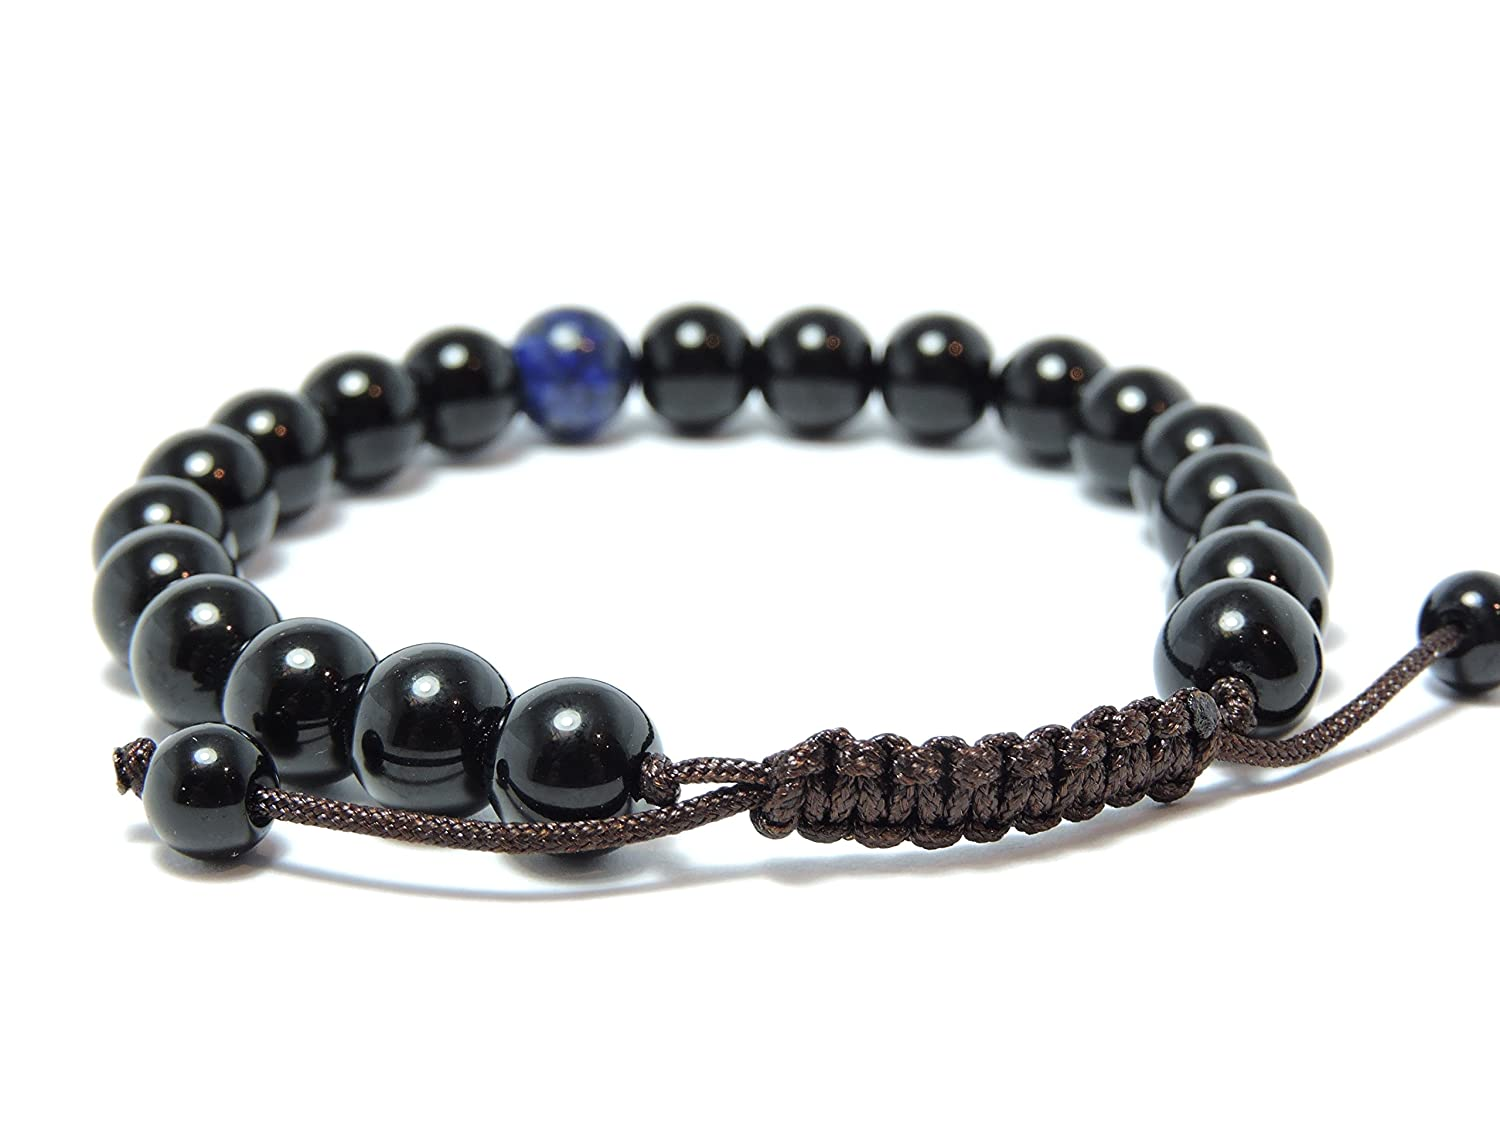 Black Onyx Wrist Mala/ Bracelet with Lapis Spacer for Meditation GMS-06 Hands Of Tibet